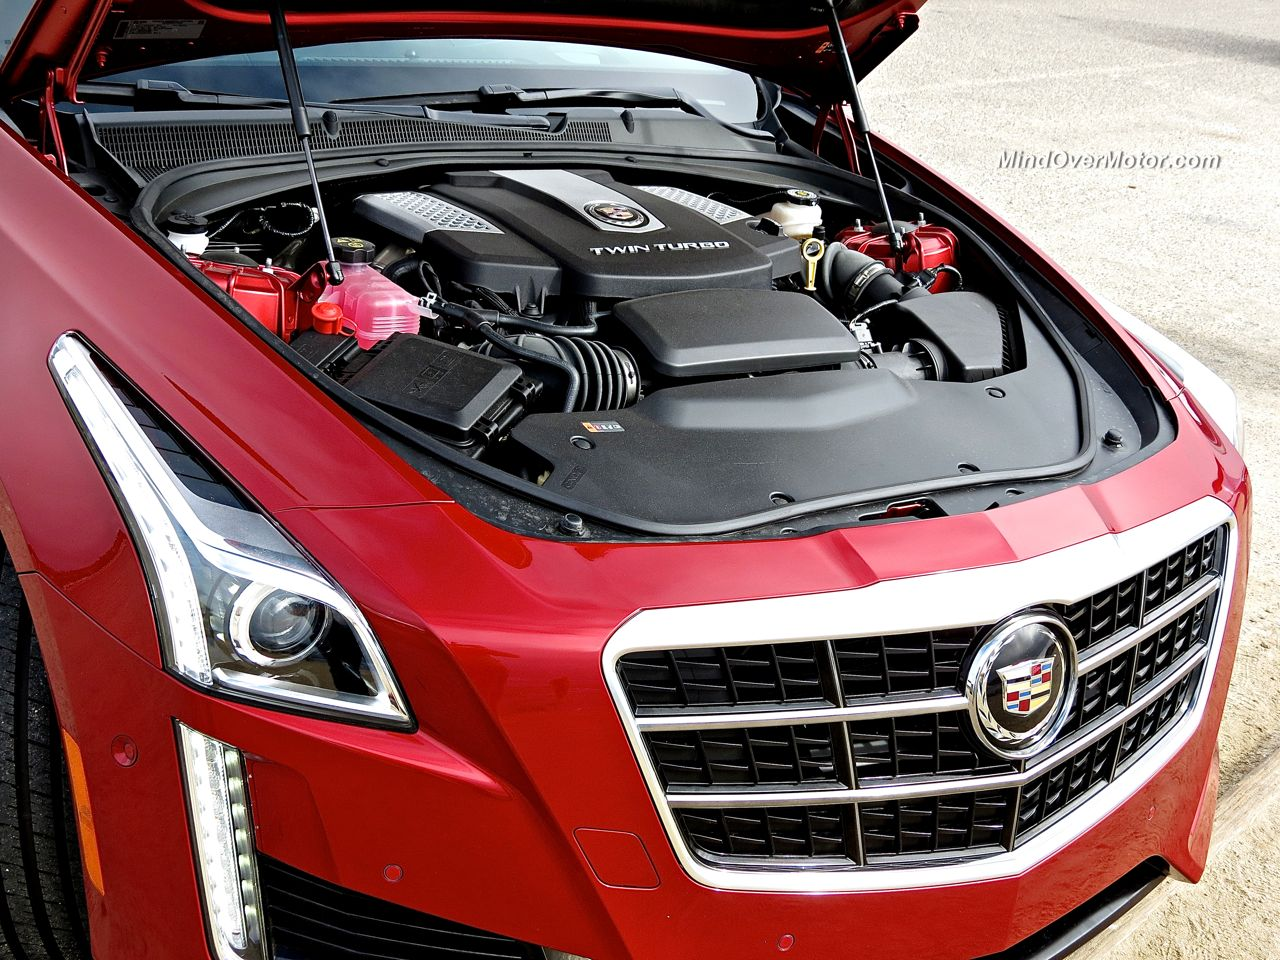 2015 Cadillac Cts Vsport Review Mind Over Motor